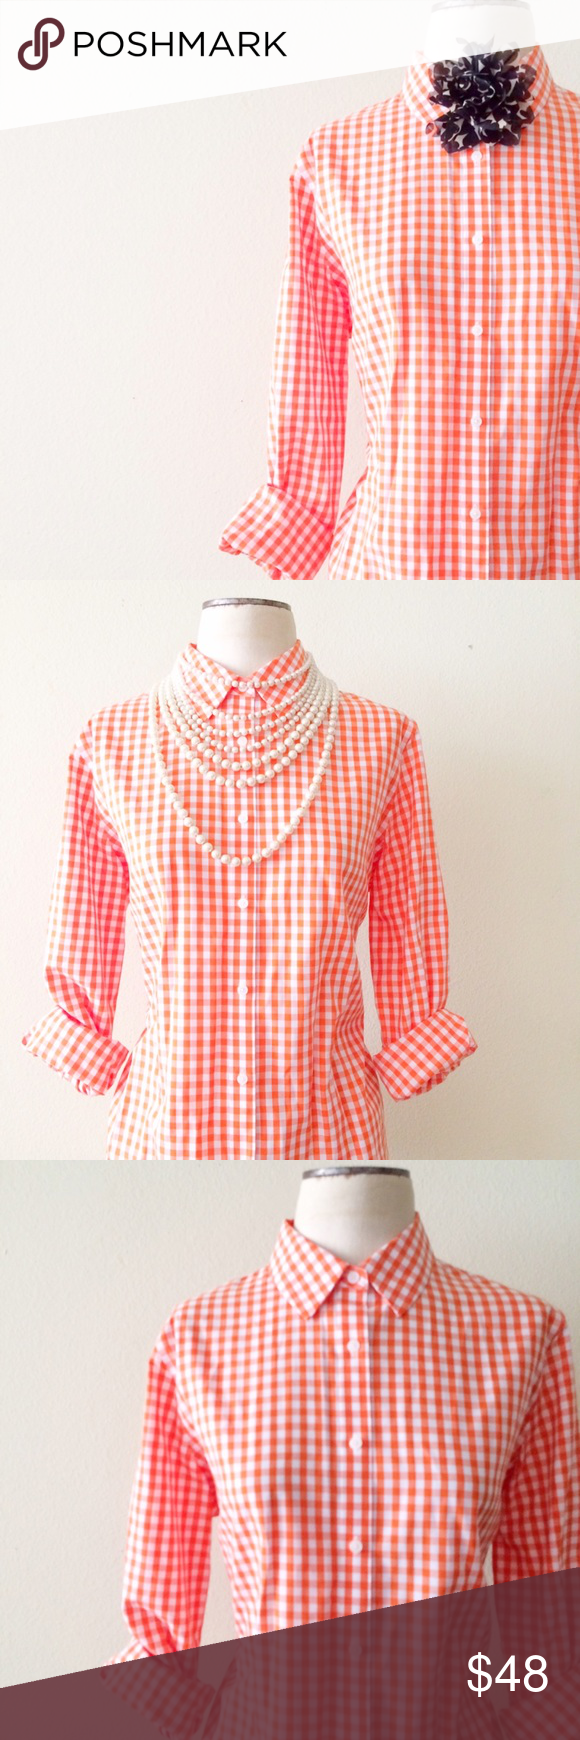 Orange Gingham Print Button Up NWOT. Size Large. Jones New York brand. Listed for exposure. Accessory not included. J. Crew Tops Button Down Shirts